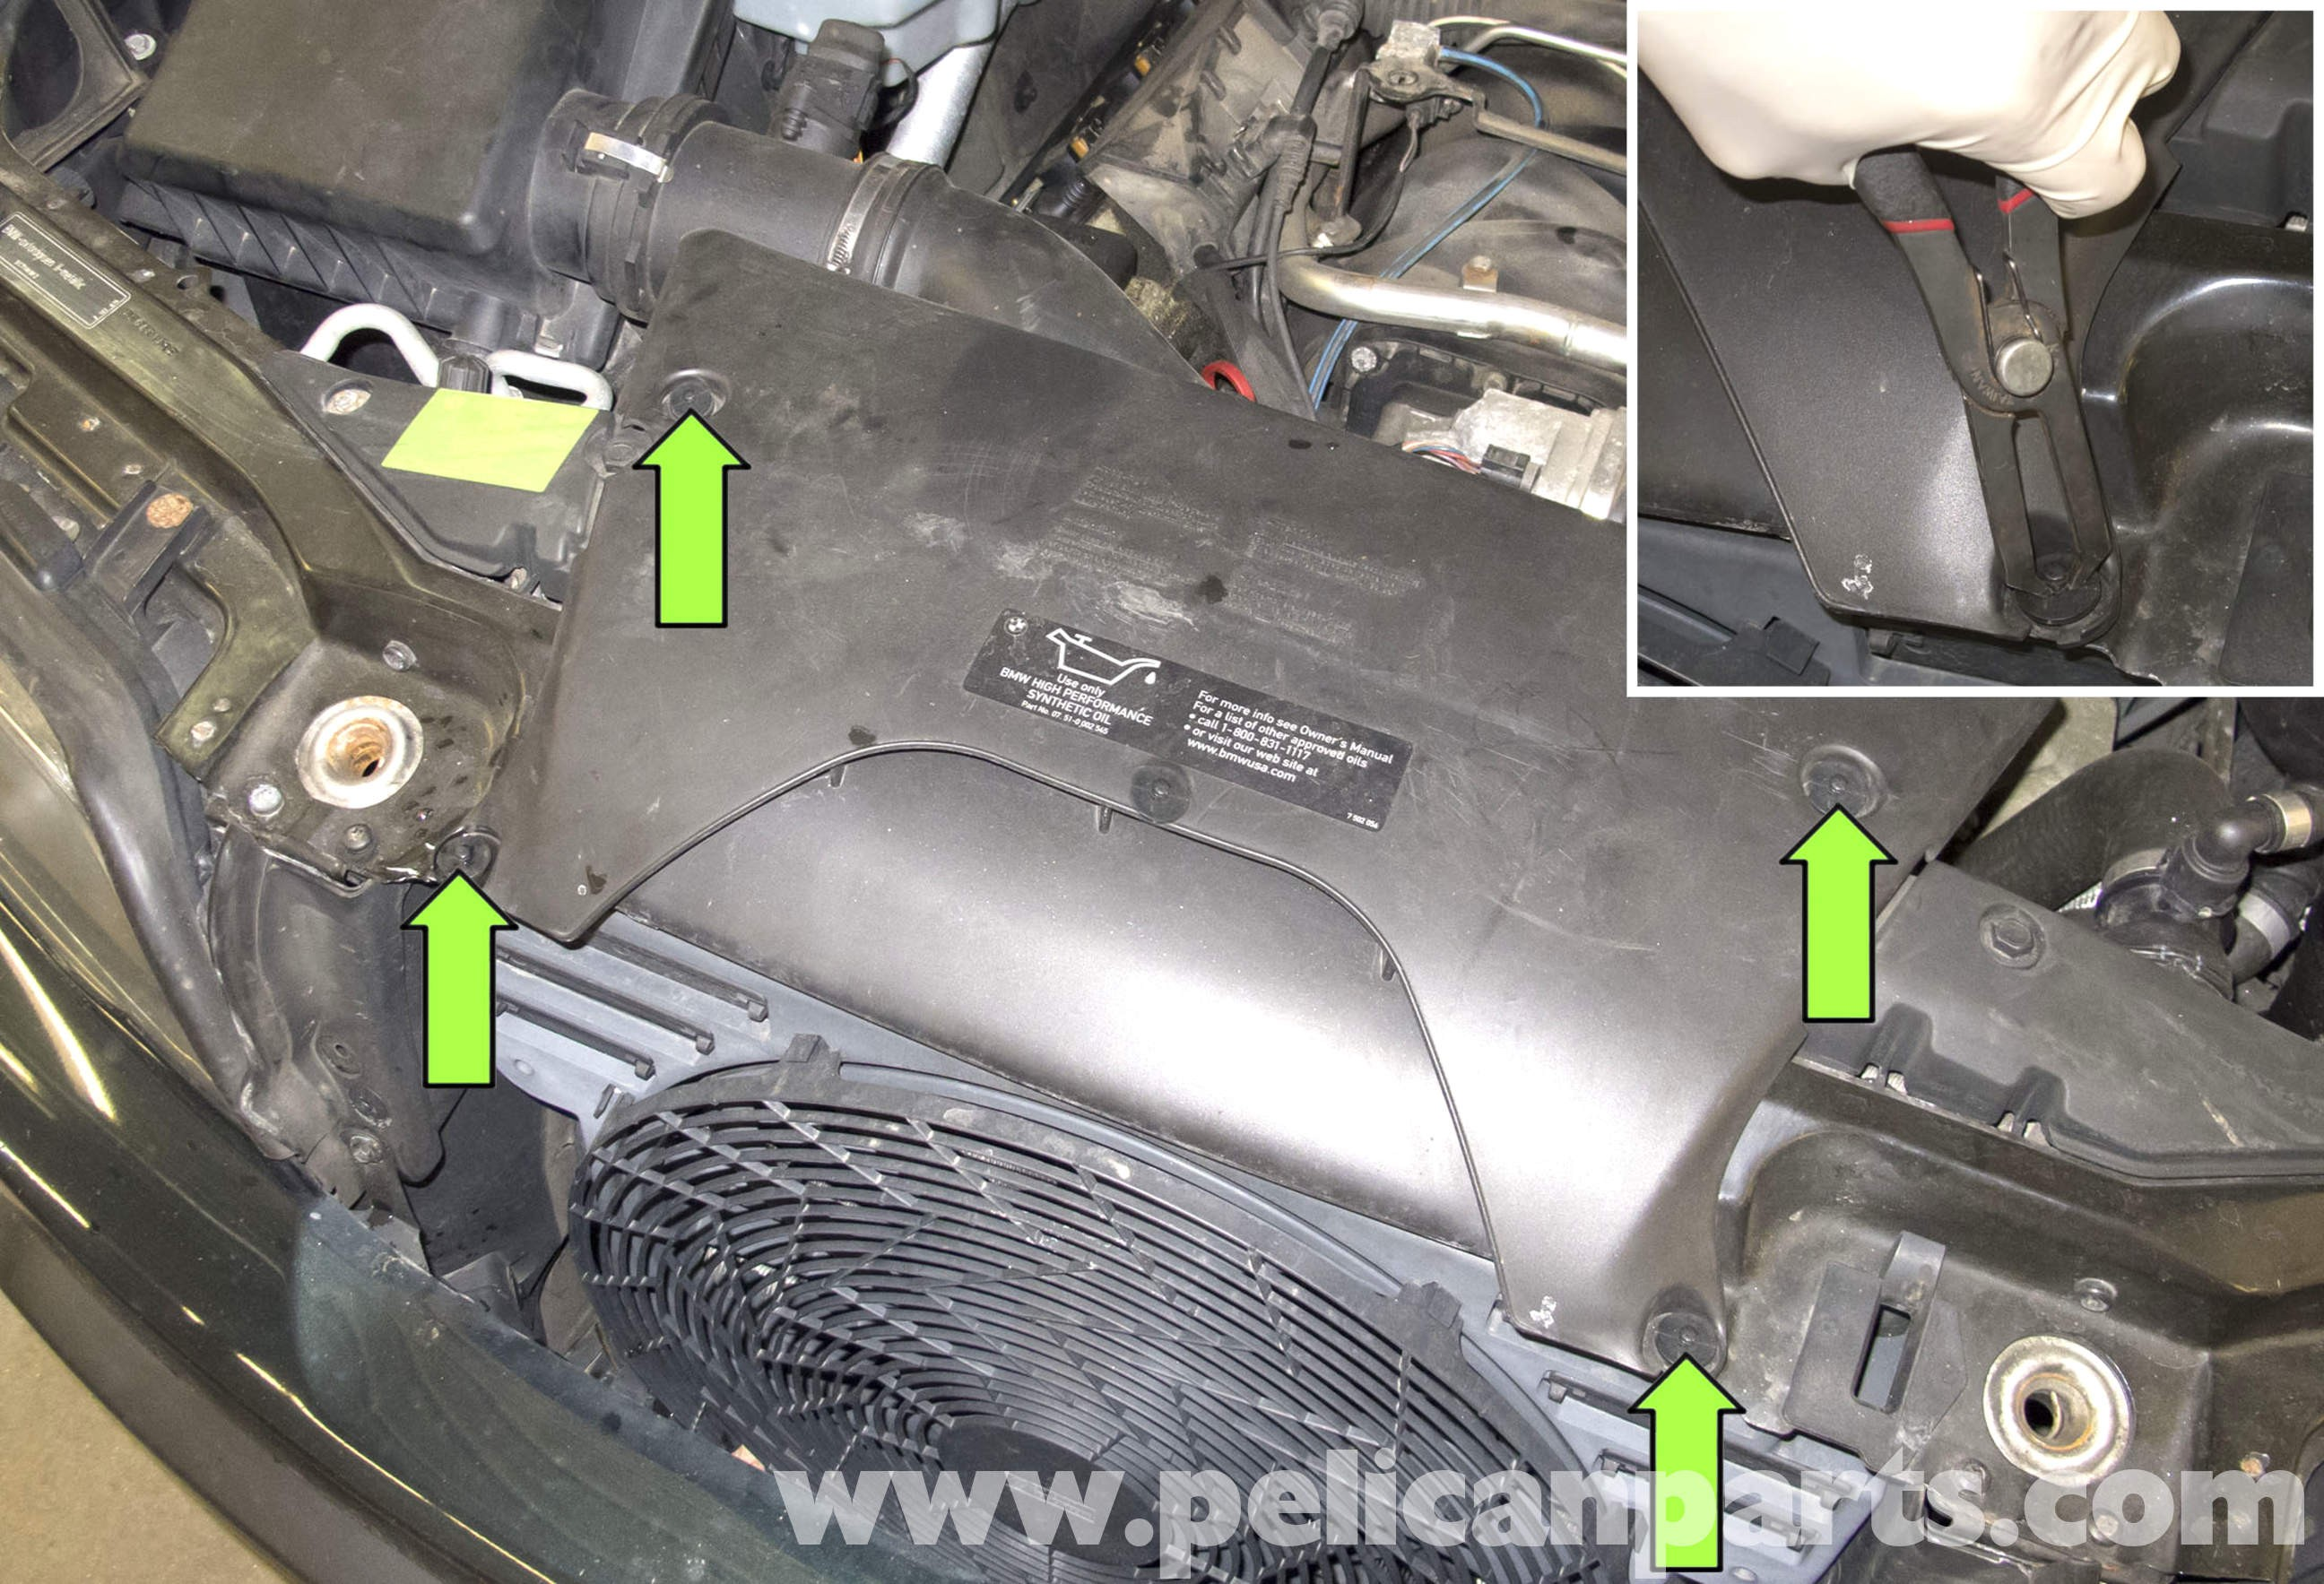 Engine Cooling Diagram Bmw X5 Engine Cooling Fan Replacement E53 2000 2006 Of Engine Cooling Diagram